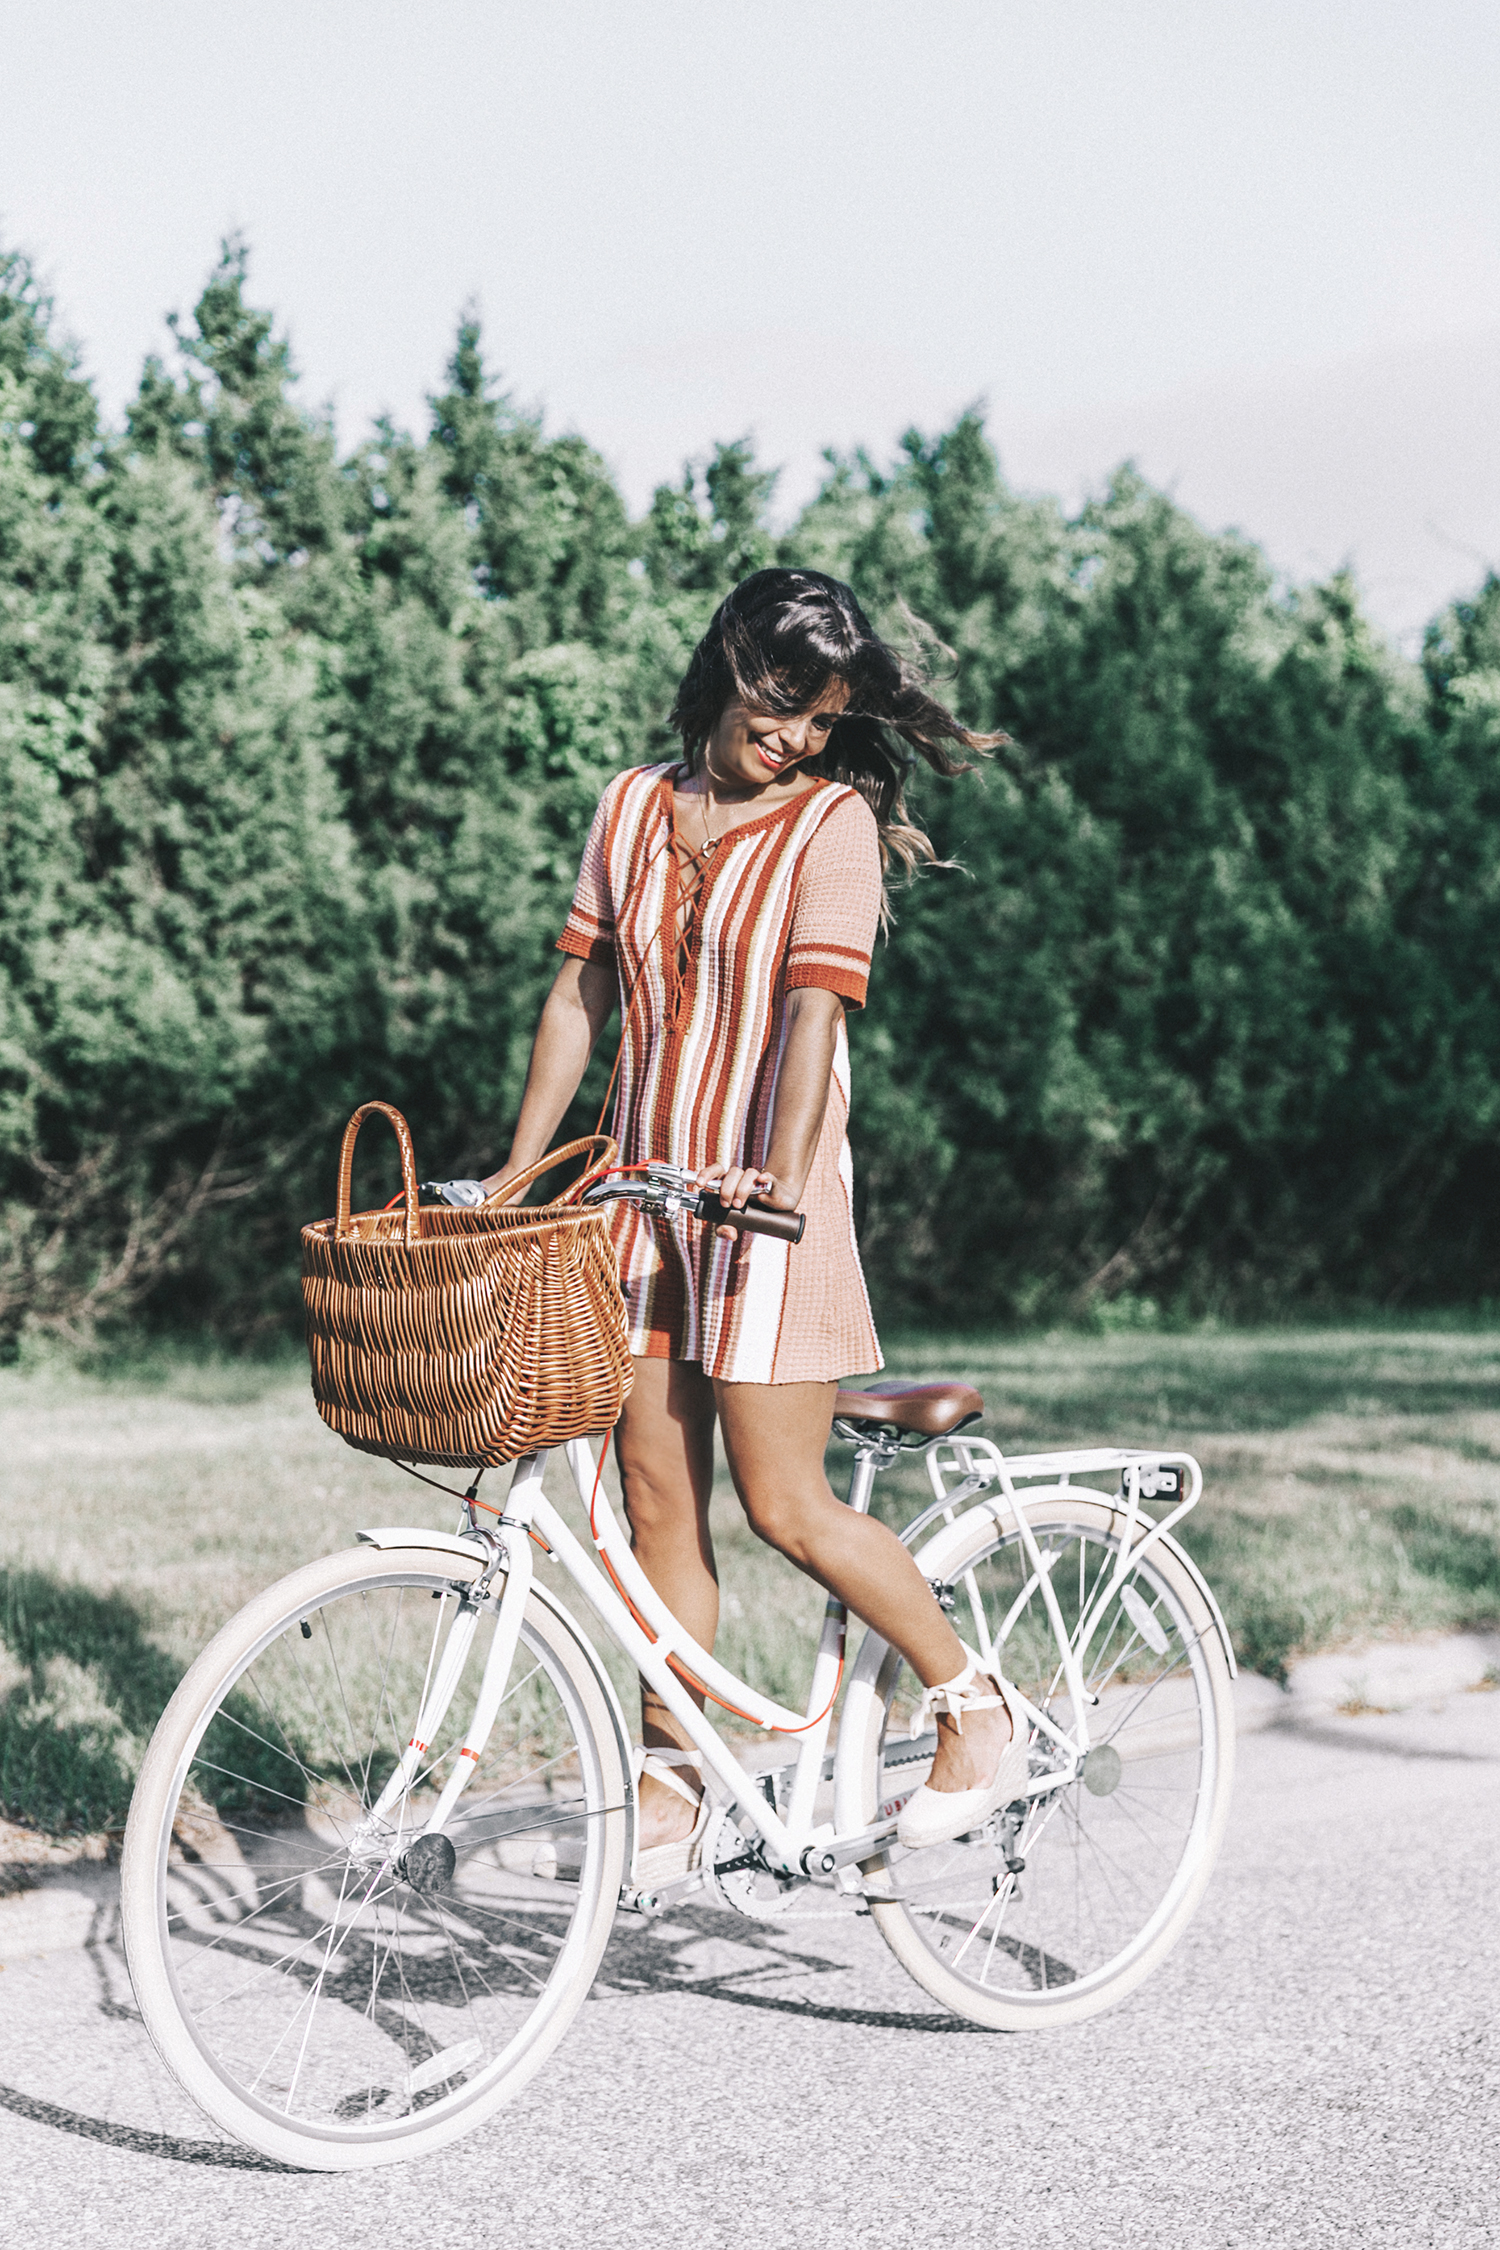 Revolve_in_The_Hamptons-Revolve_Clothing-Collage_Vintage-Free_People_Lace_Dress-Knitted_Dress-Soludos_Espadrilles-Canotier-Hat-Outfit-80